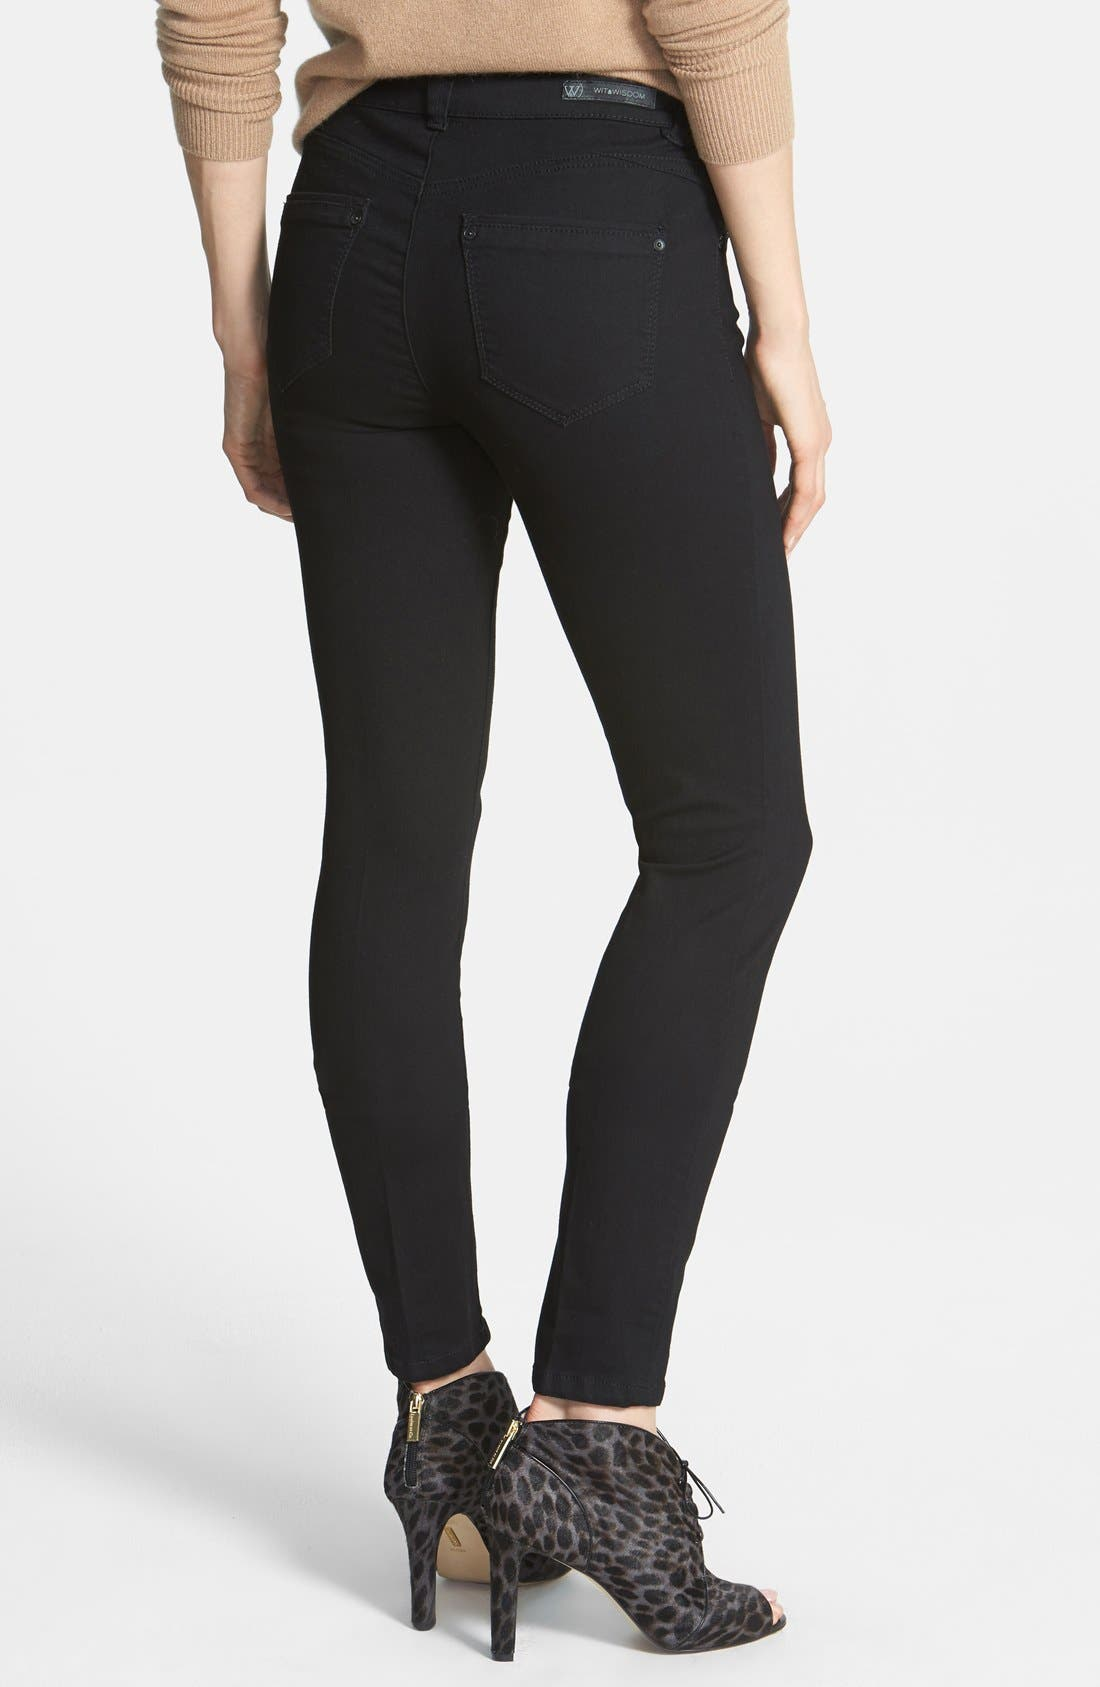 Lightweight Stretch Skinny Jeans,                             Alternate thumbnail 4, color,                             002